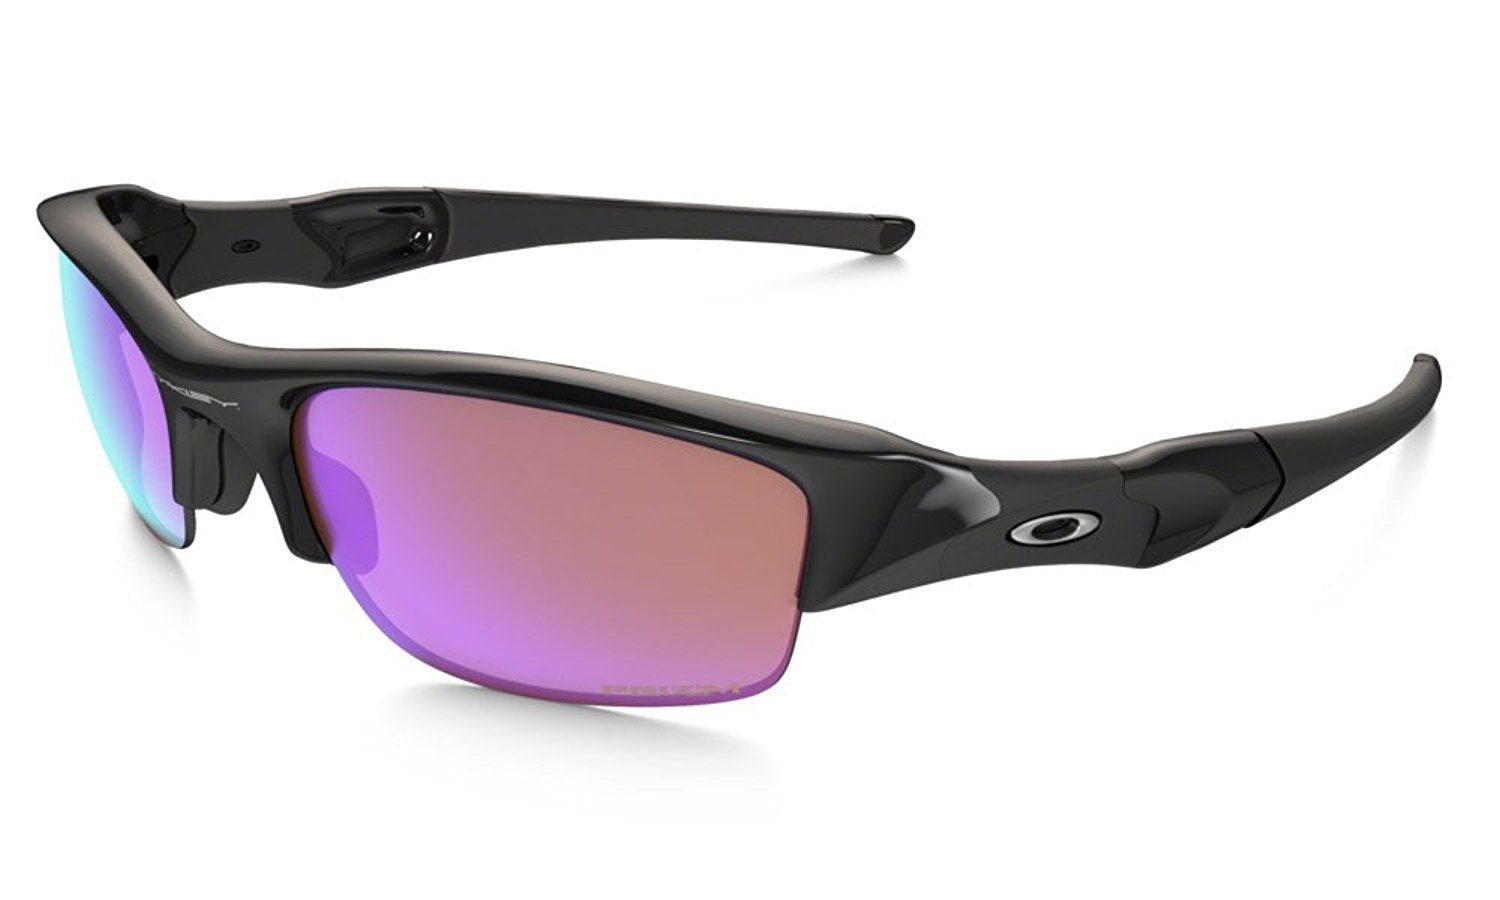 2592cb0981 Oakley Flax 2.0 XL Sunglasses. Amazon